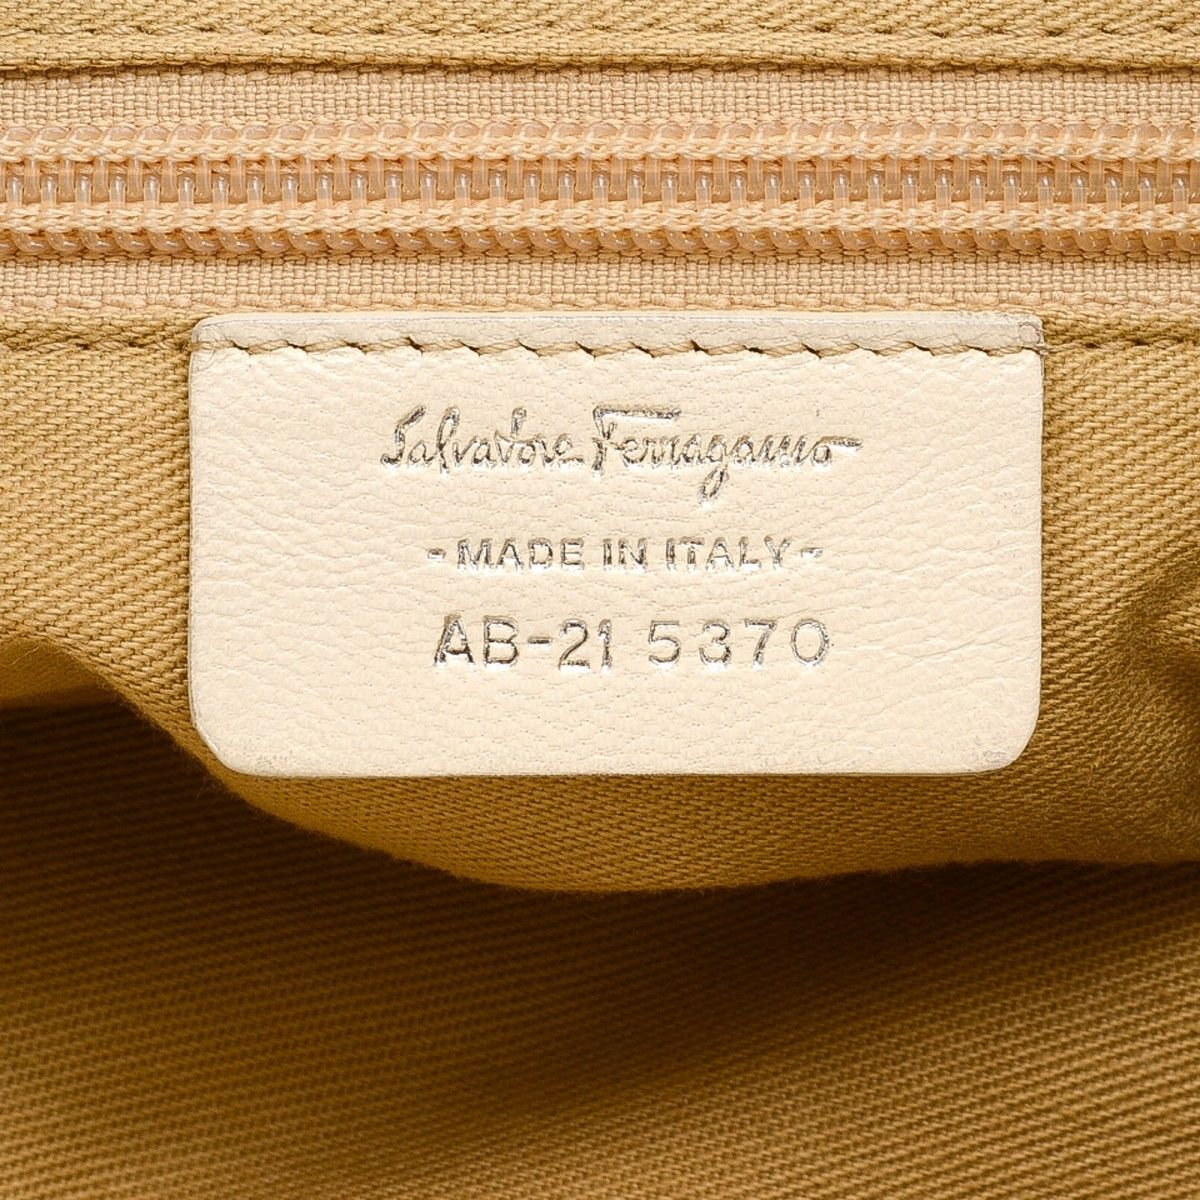 666f96ca1685 Marisa. Free Shipping. LXRandCo guarantees this is an authentic vintage  Ferragamo Marisa handbag. This beautiful pocketbook in cream is made of  leather.